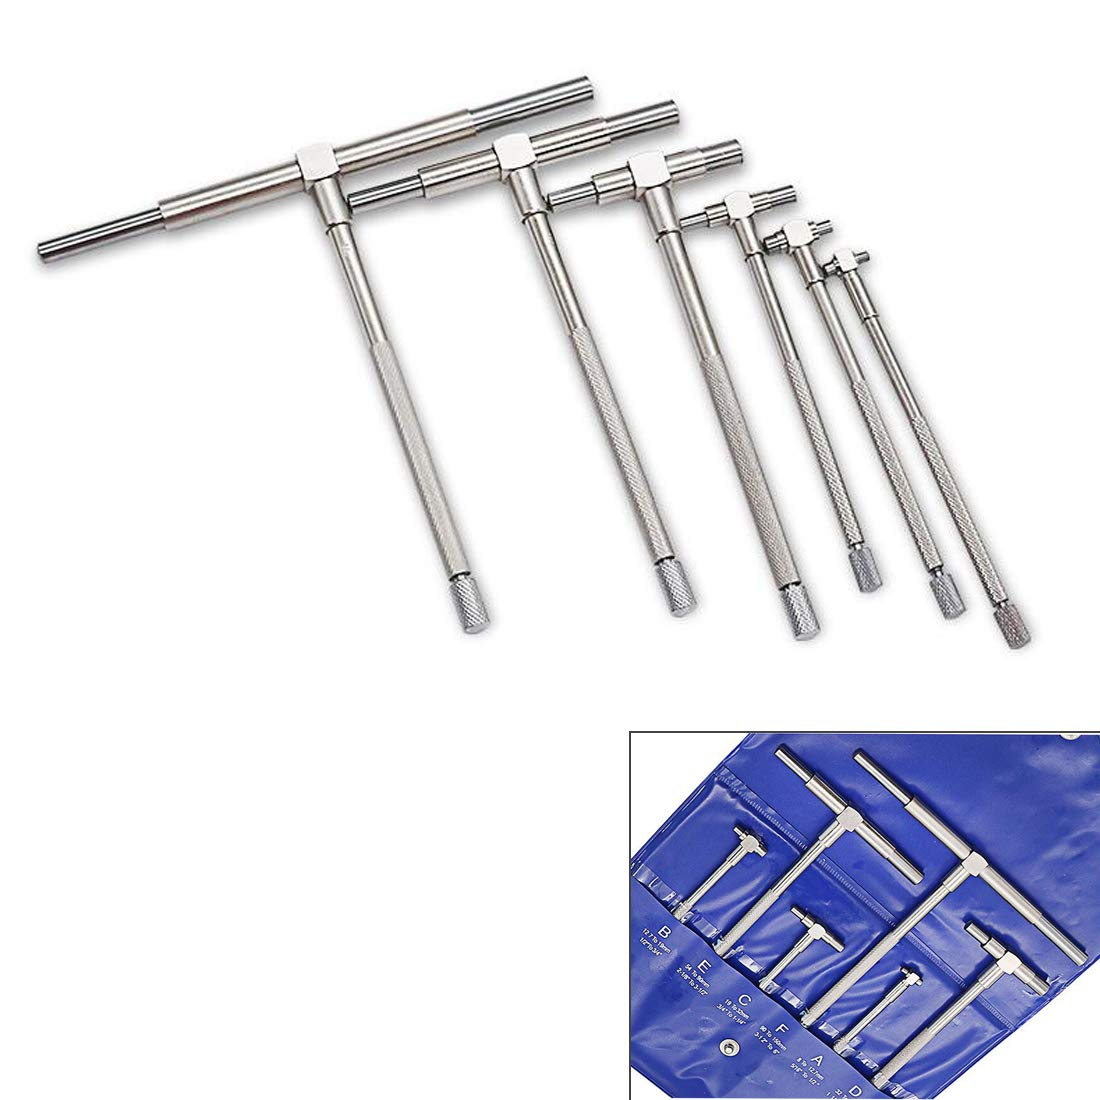 ZXHAO Cr Stainless Steel 5/16'' - 6'' Range Precision Telescoping T-Bore Hole Gauges Set with Pouch 1set